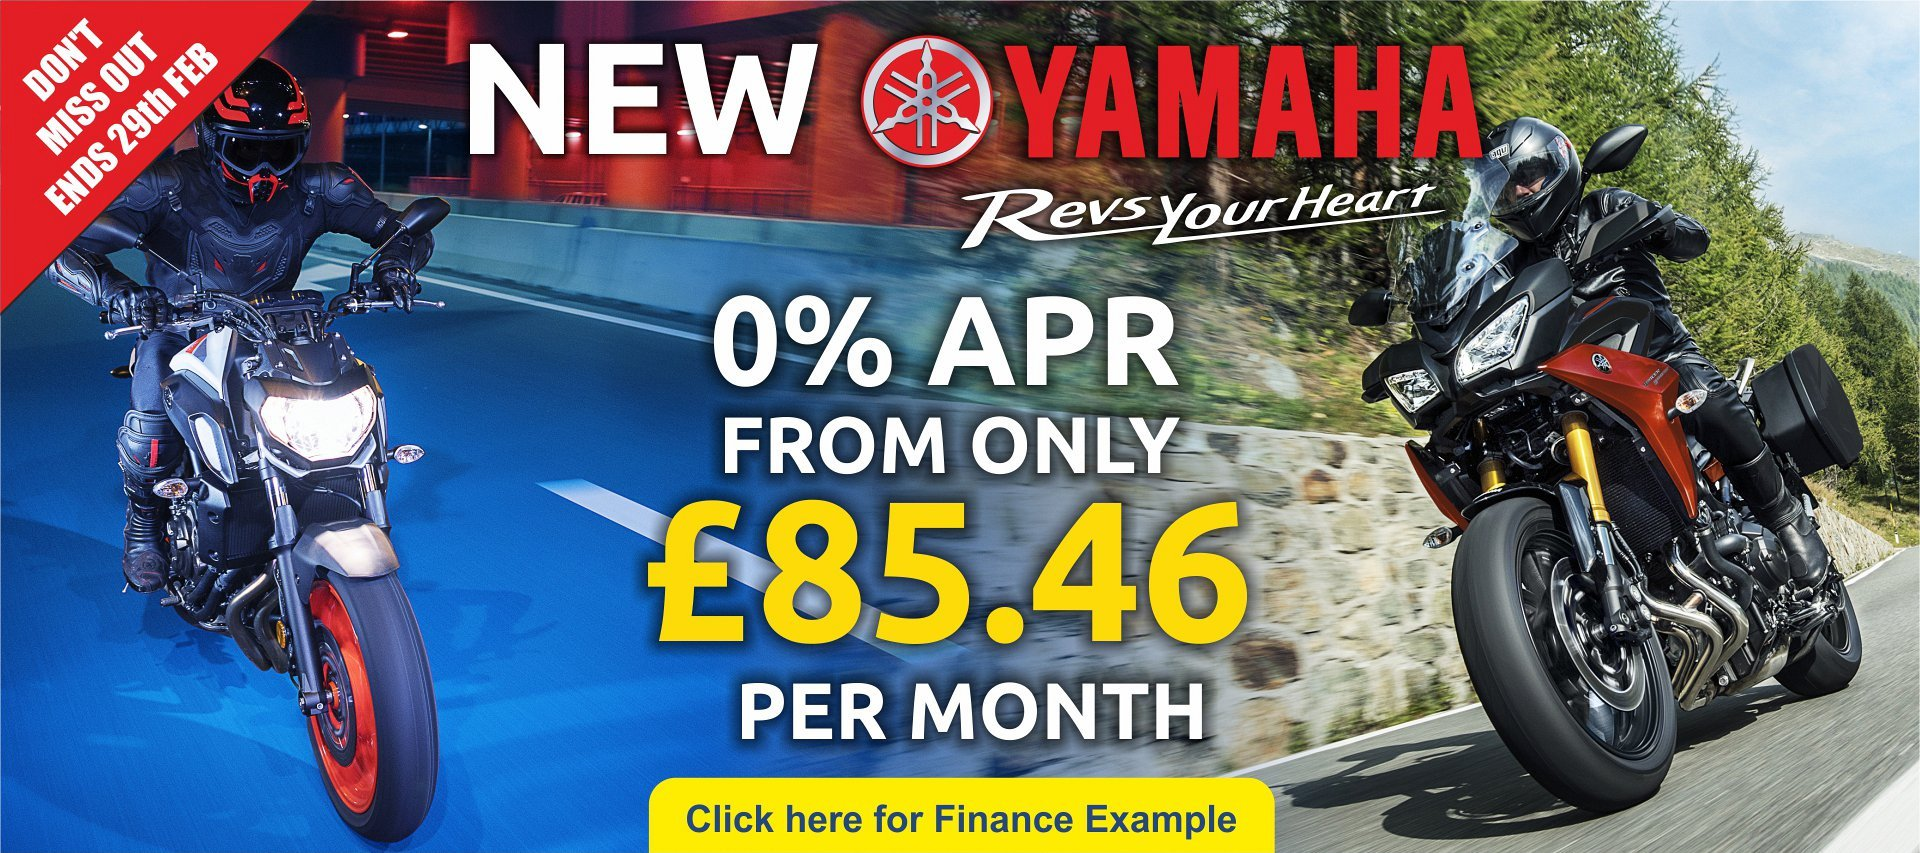 Hurry  - 0% Offer ends 29th February .   A range of new Yamaha's available from CMC bikes from only £85.46 per month.